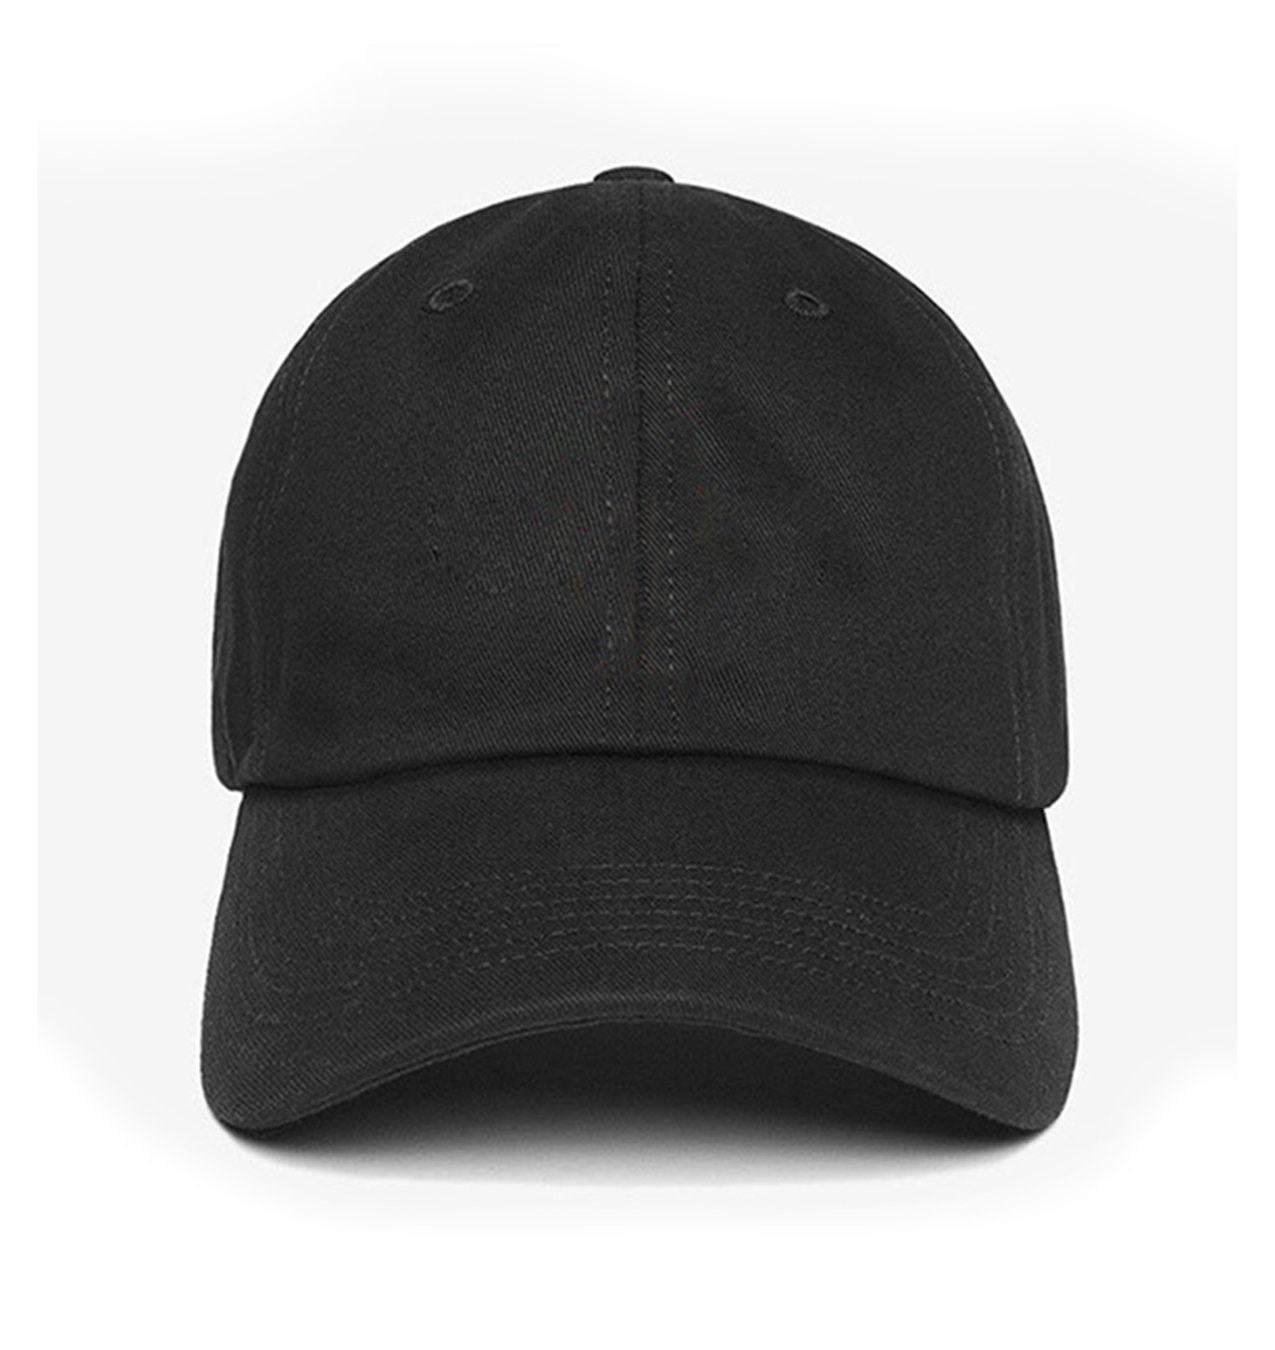 26d716b8bf2b5 Unstructured Blank Cap Dad Hat